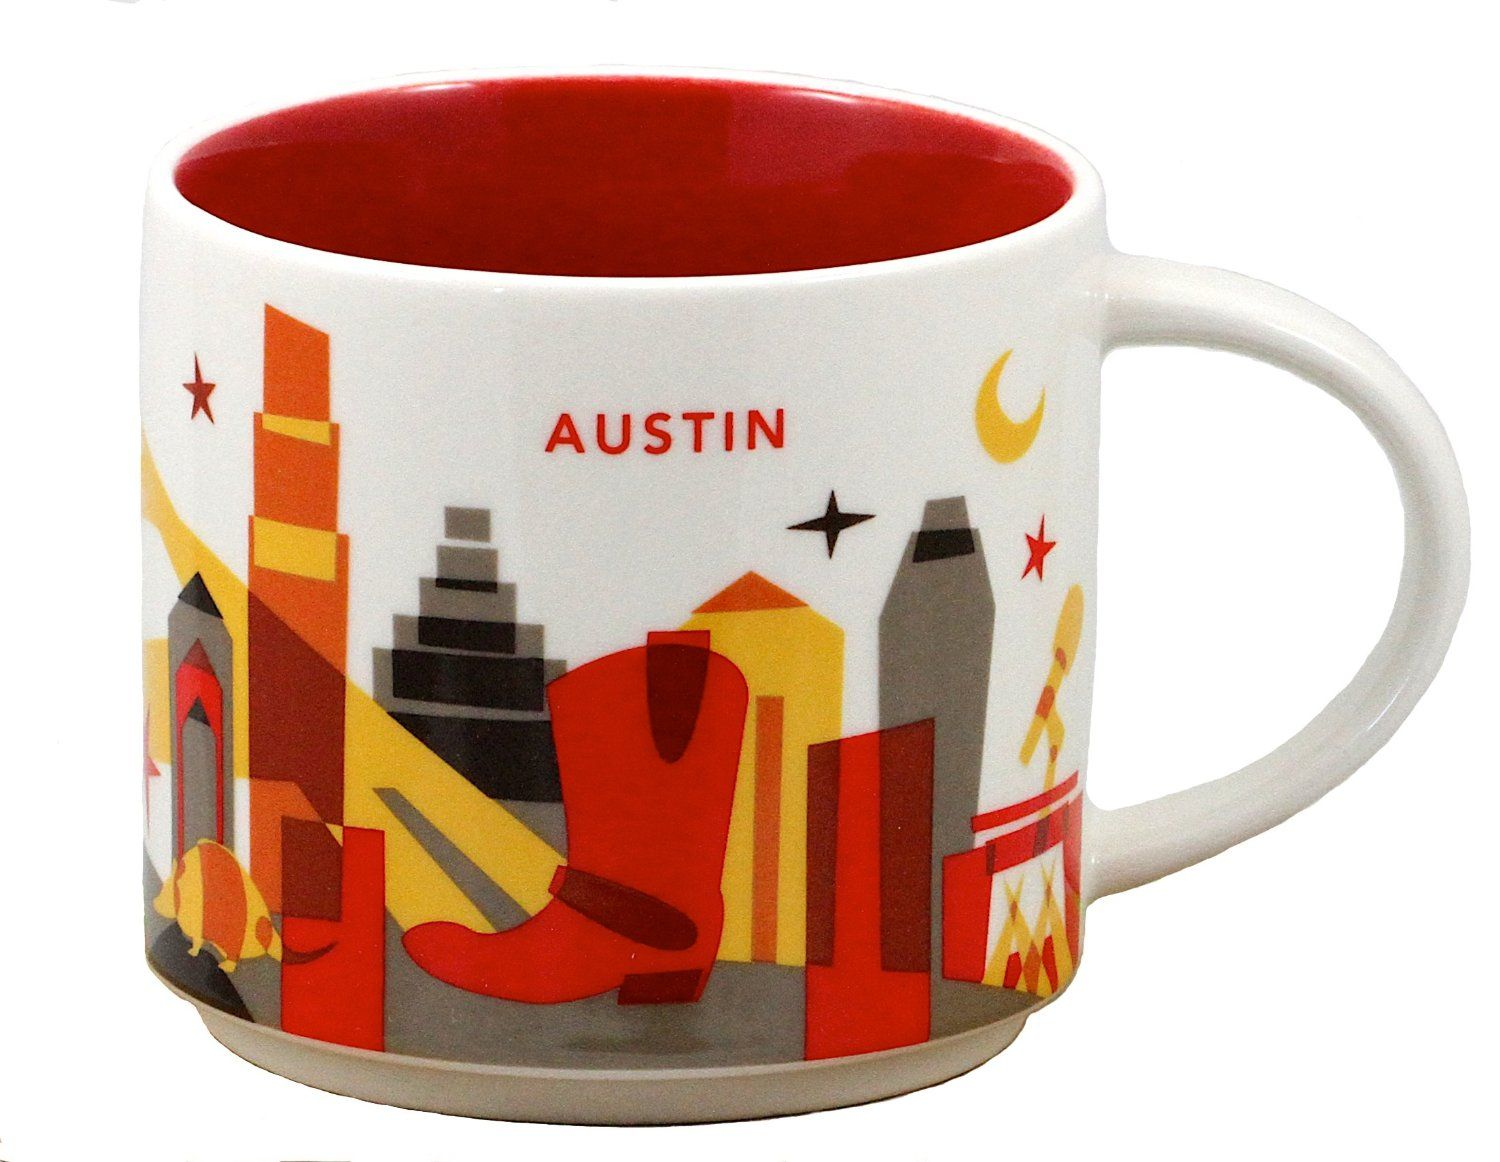 Starbucks Austin Coffee Mug You Are Here